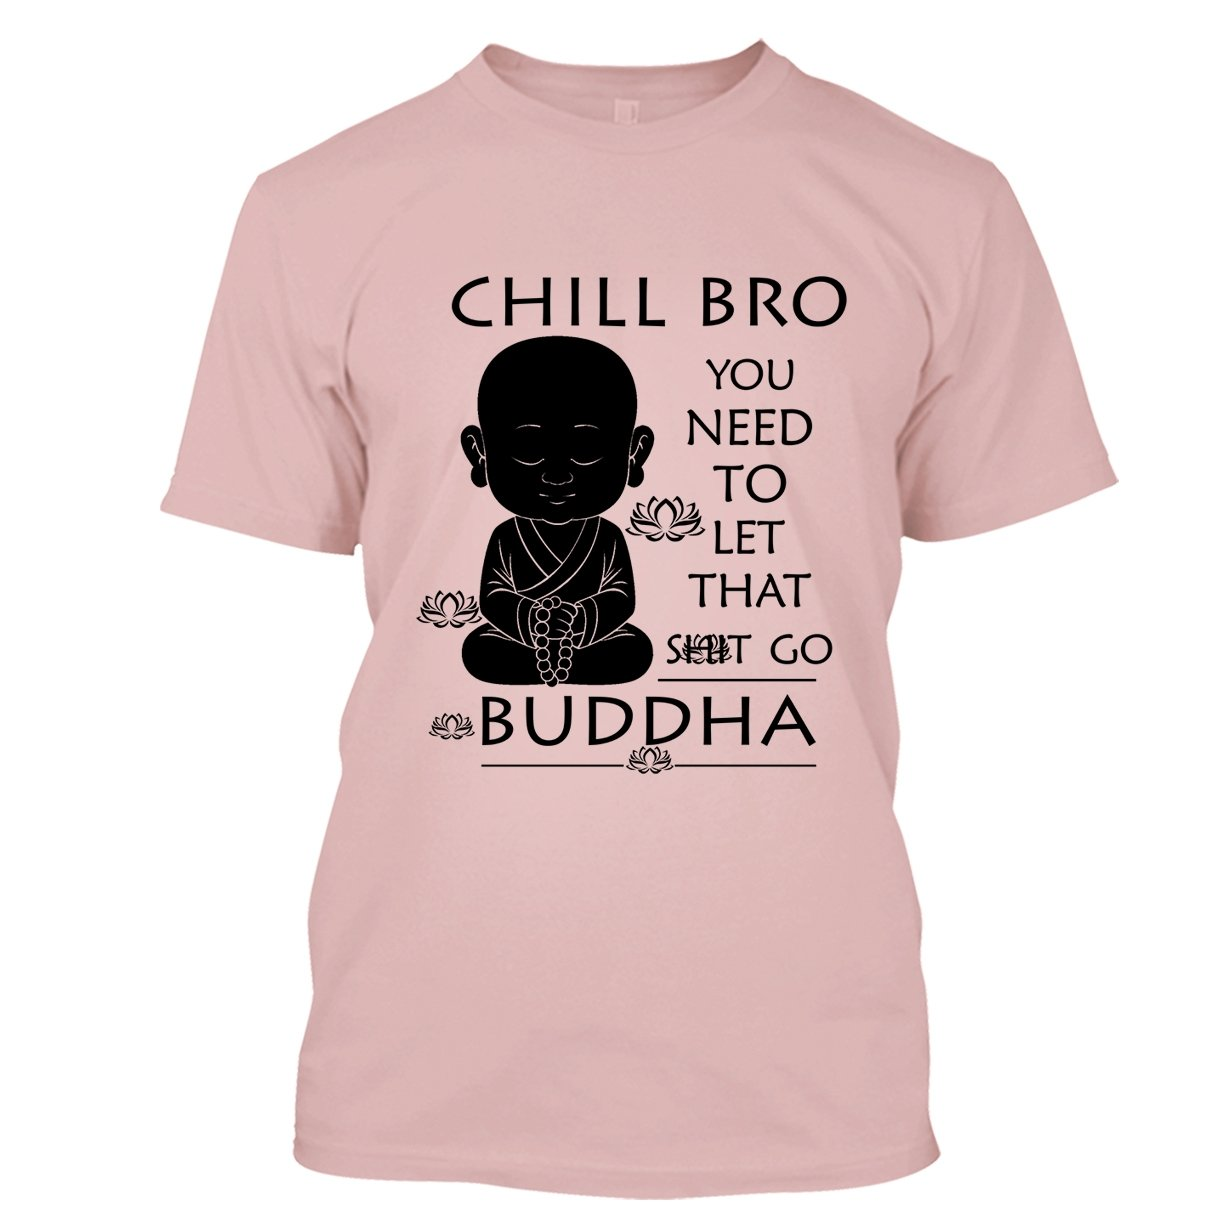 e13cfc19a Amazon.com: BigTees Buddha T Shirt - Chill Bro Cool T Shirts Design:  Clothing